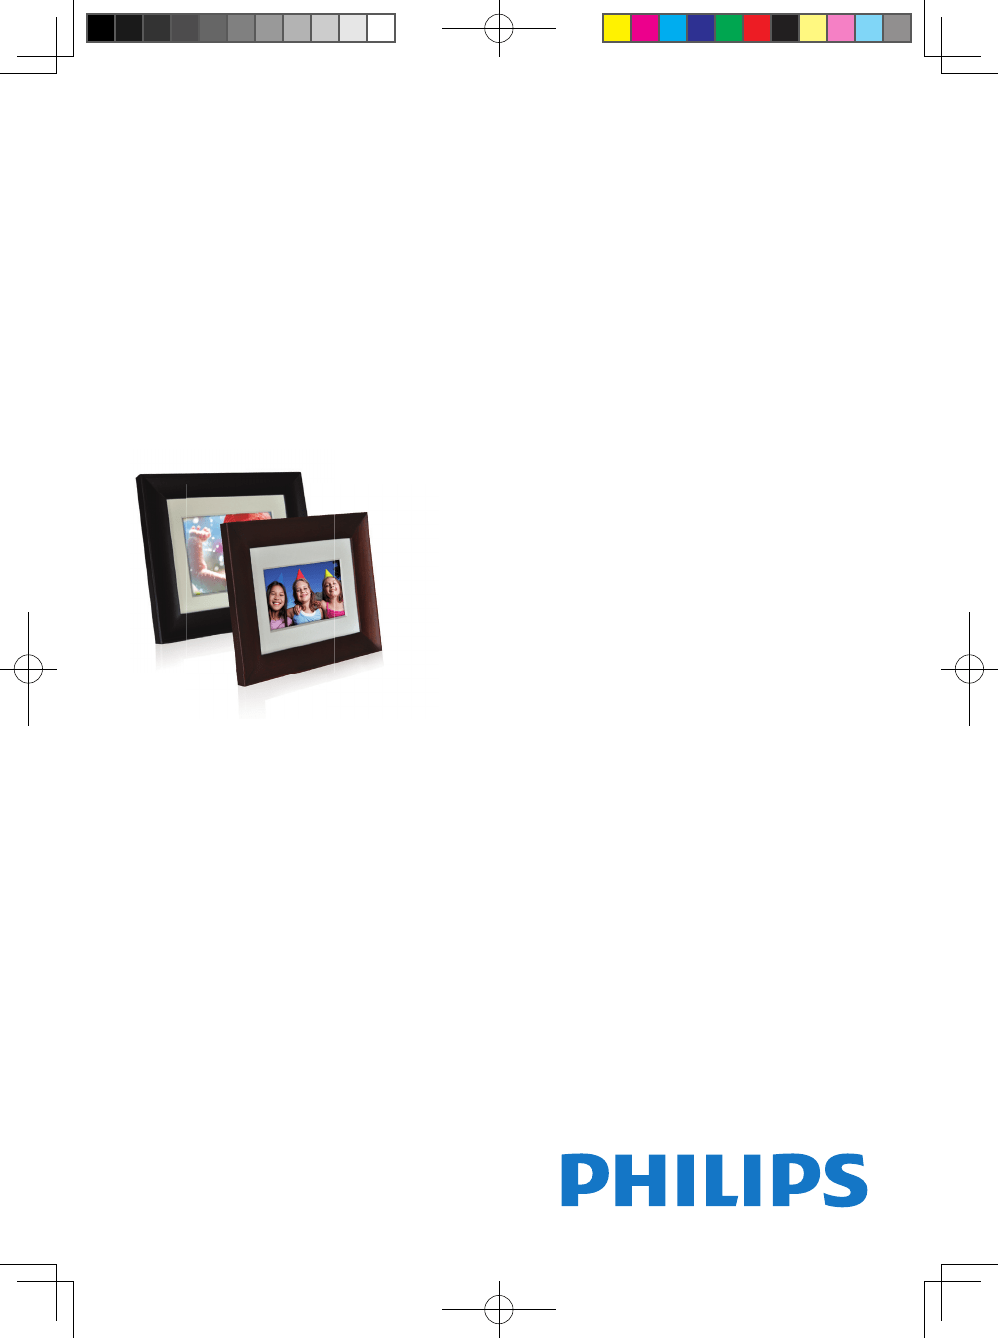 Philips Digital Photo Frame SPF3007/G7 User Guide